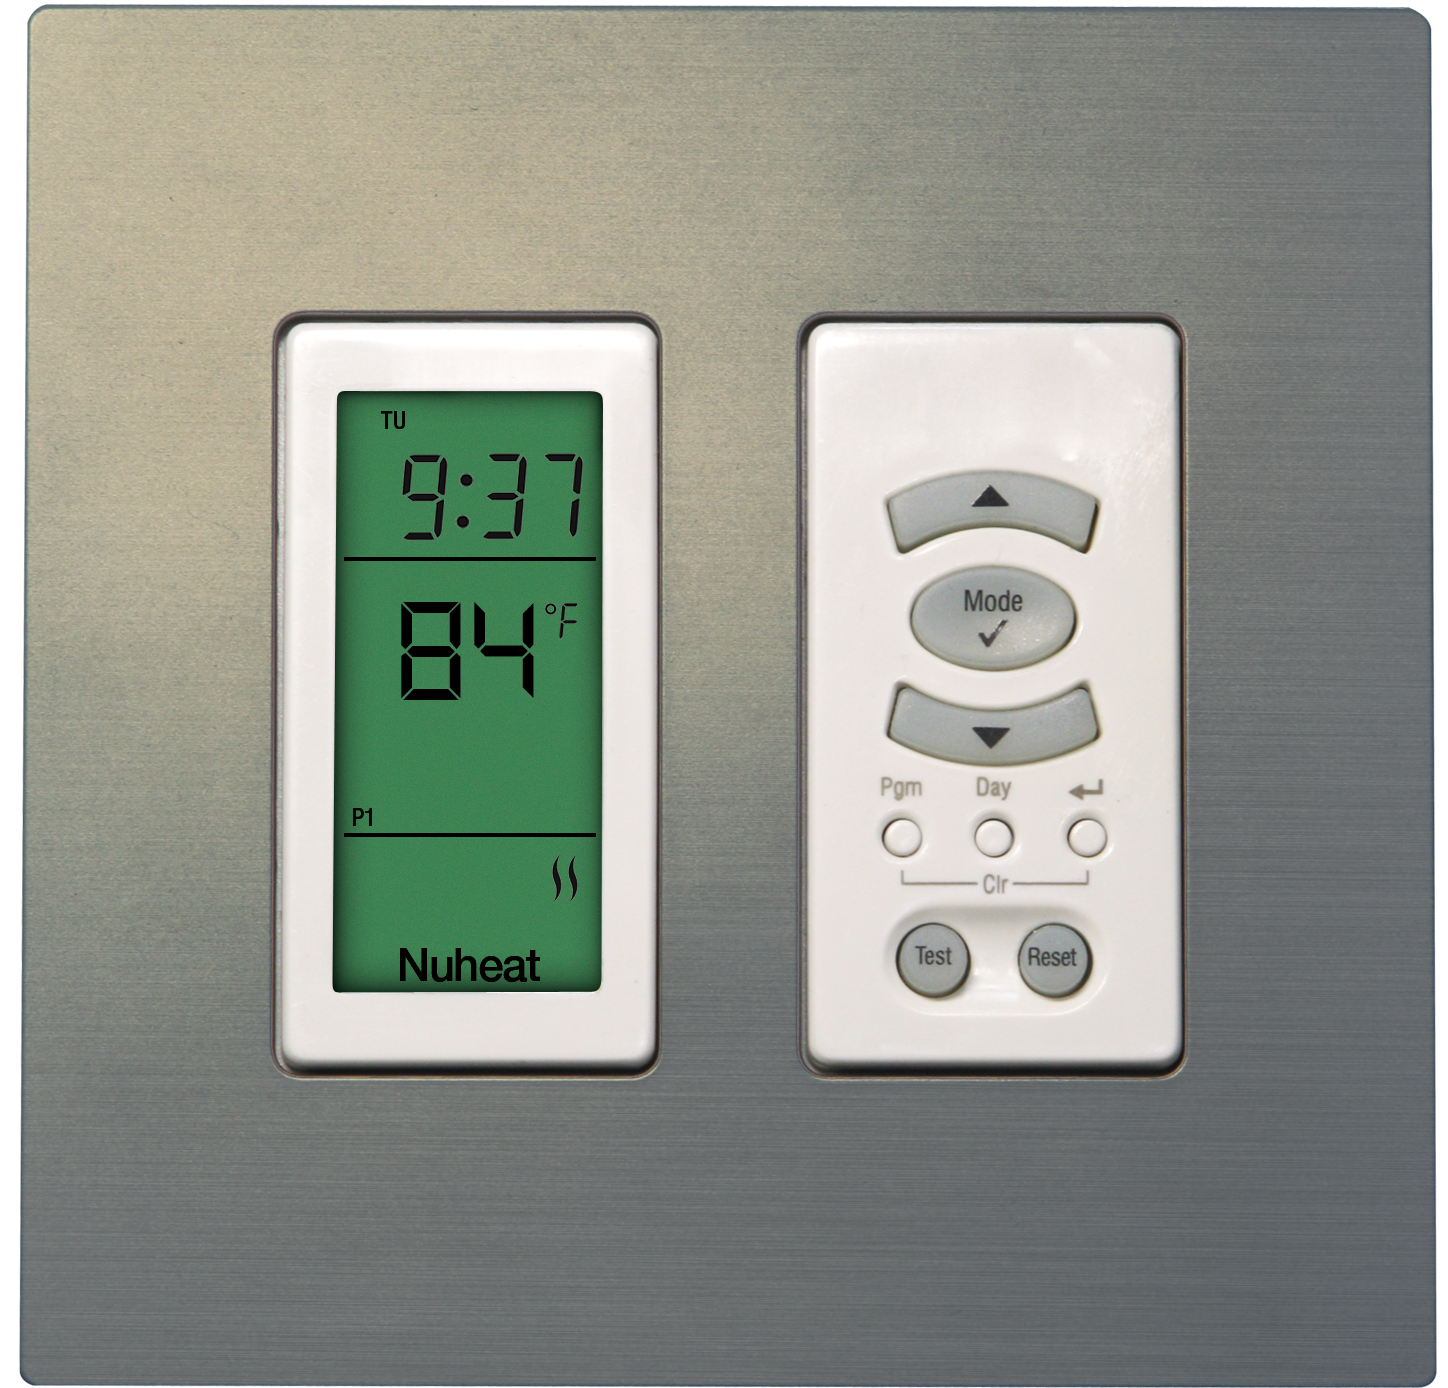 harmony w stealfaceplate 2015?sfvrsn=2 past models nuheat thermostat wiring diagram at aneh.co